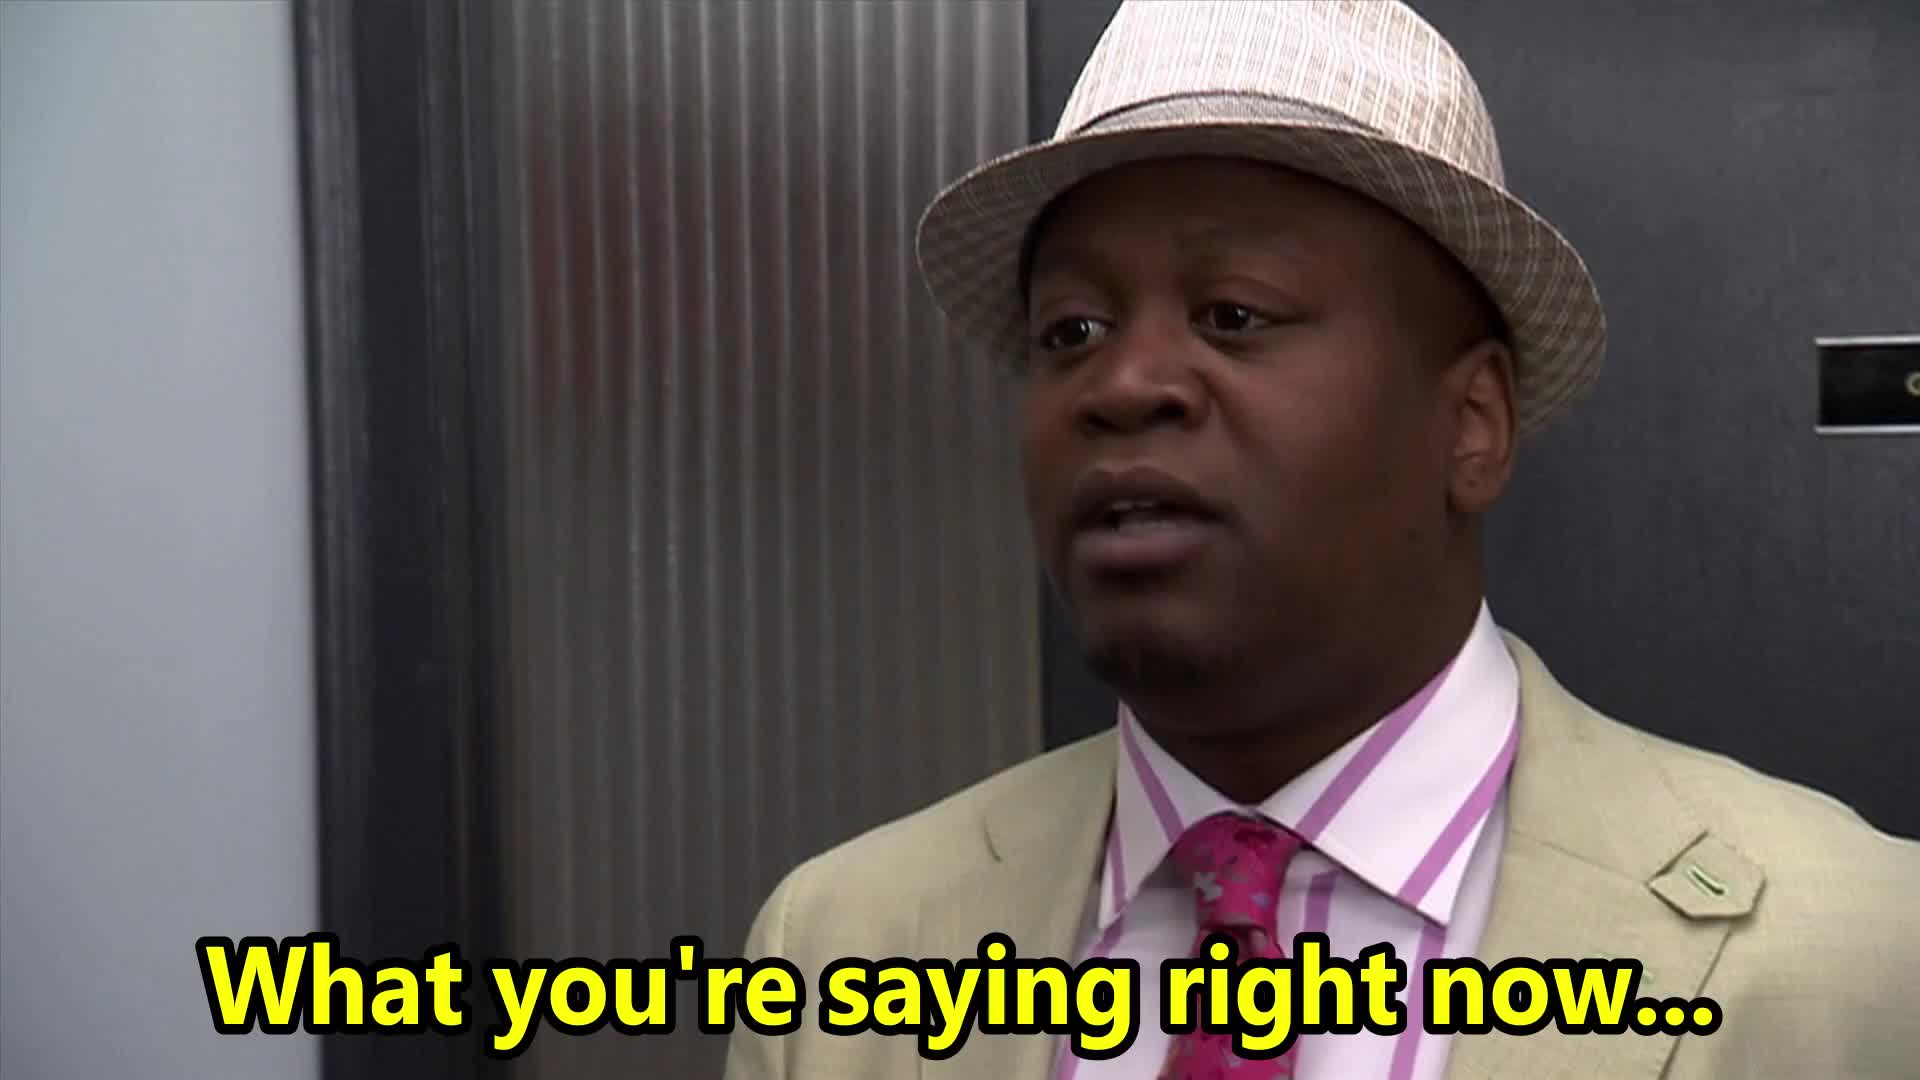 30 rock, bored, boring, d'fwan, is, jordan, not amused, now, of, queen, right, s06e20, saying, very, what, you're, what you're saying right now is very boring GIFs